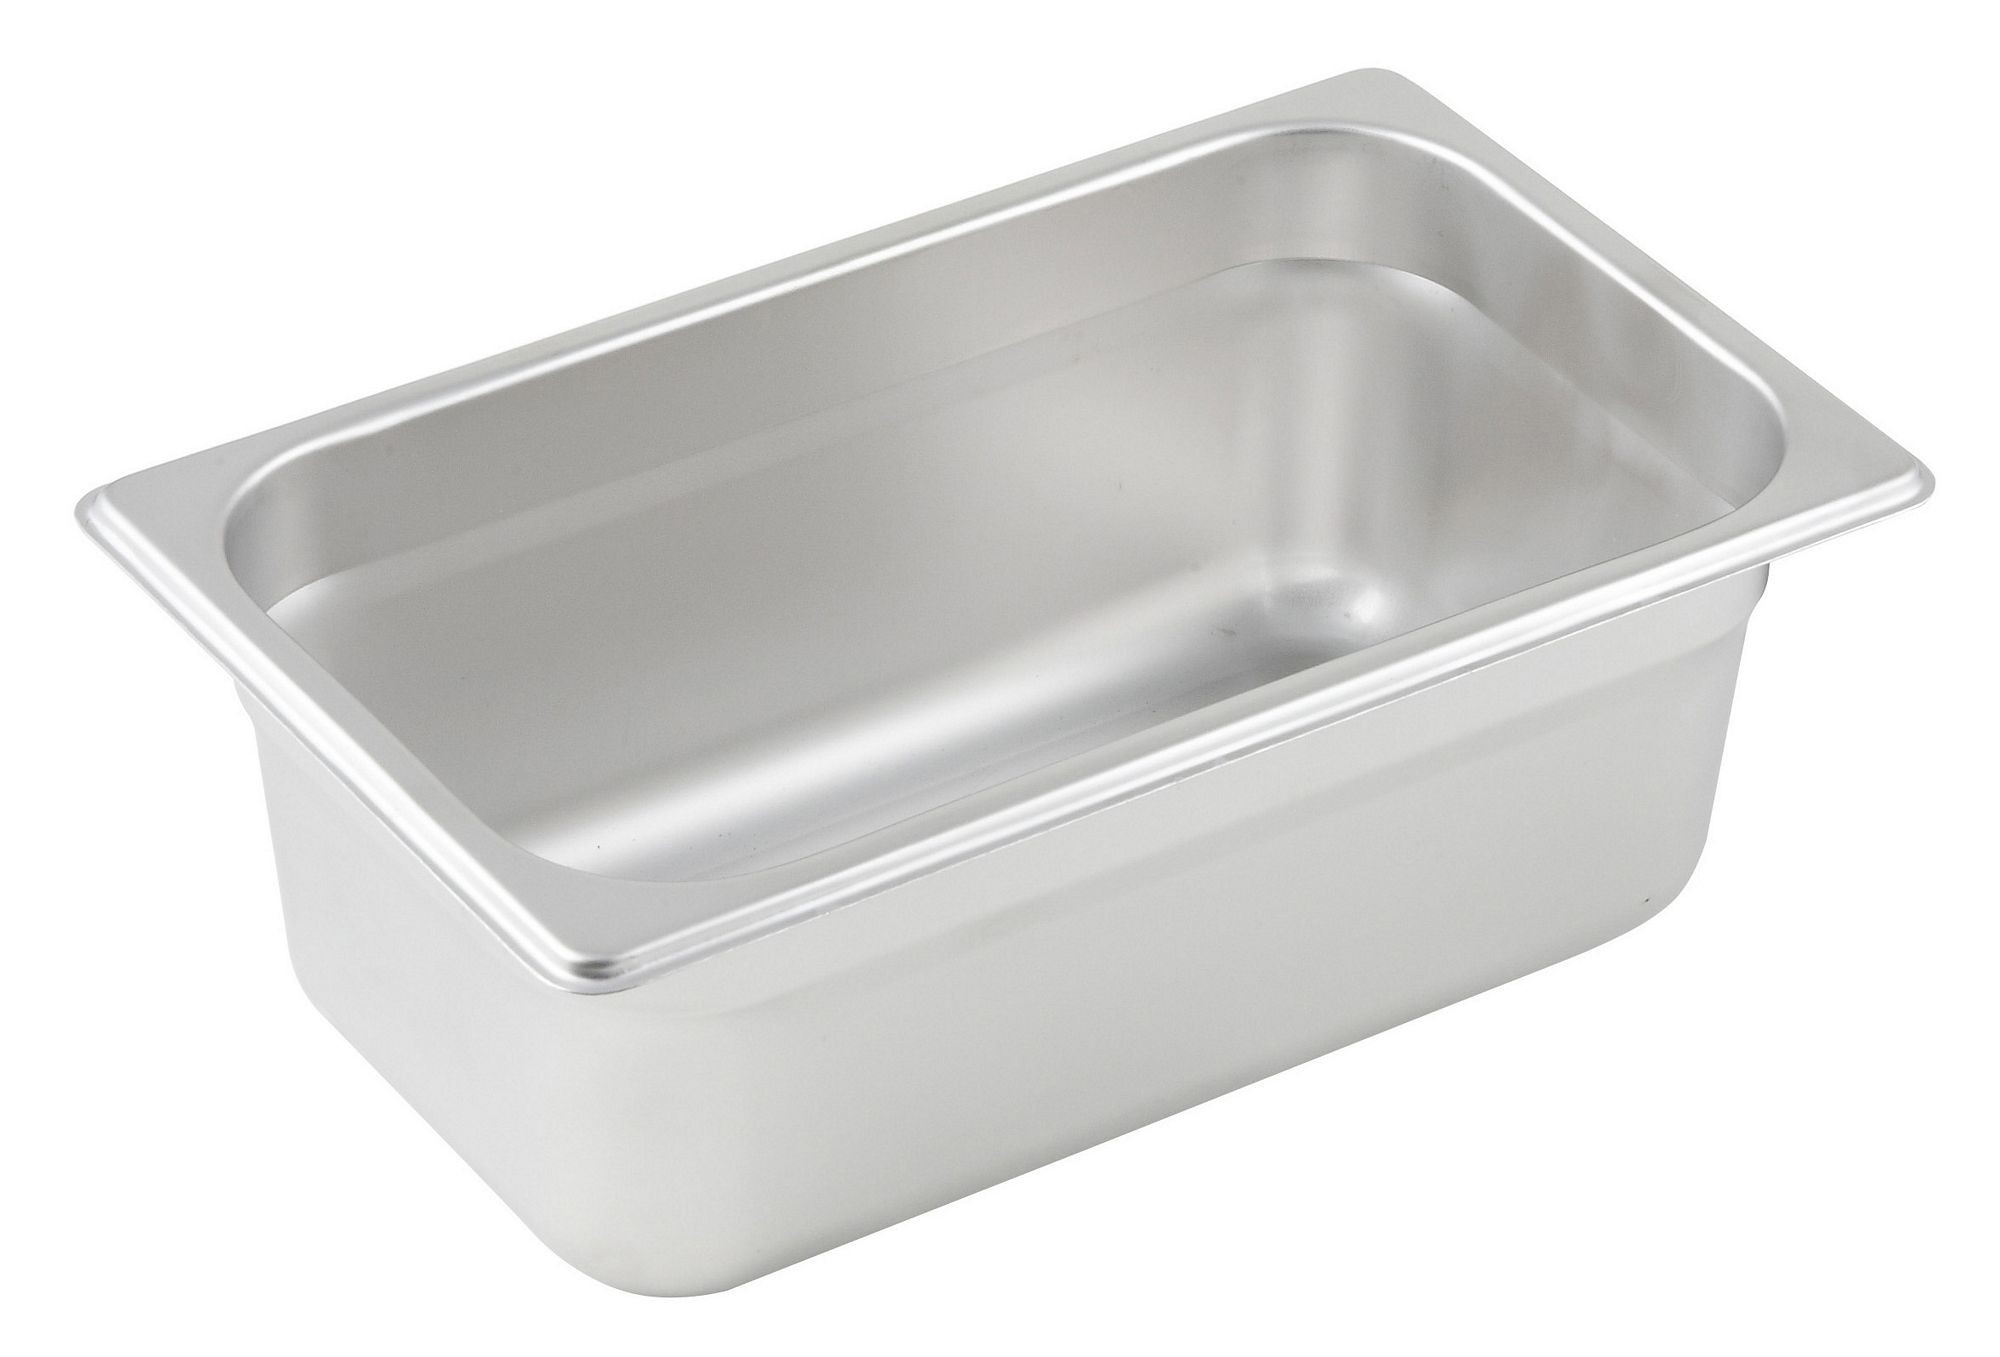 "Winco Spjl-404 1/4 Size Anti-Jam 25 Gauge Steam Table Pan 4"" Deep"